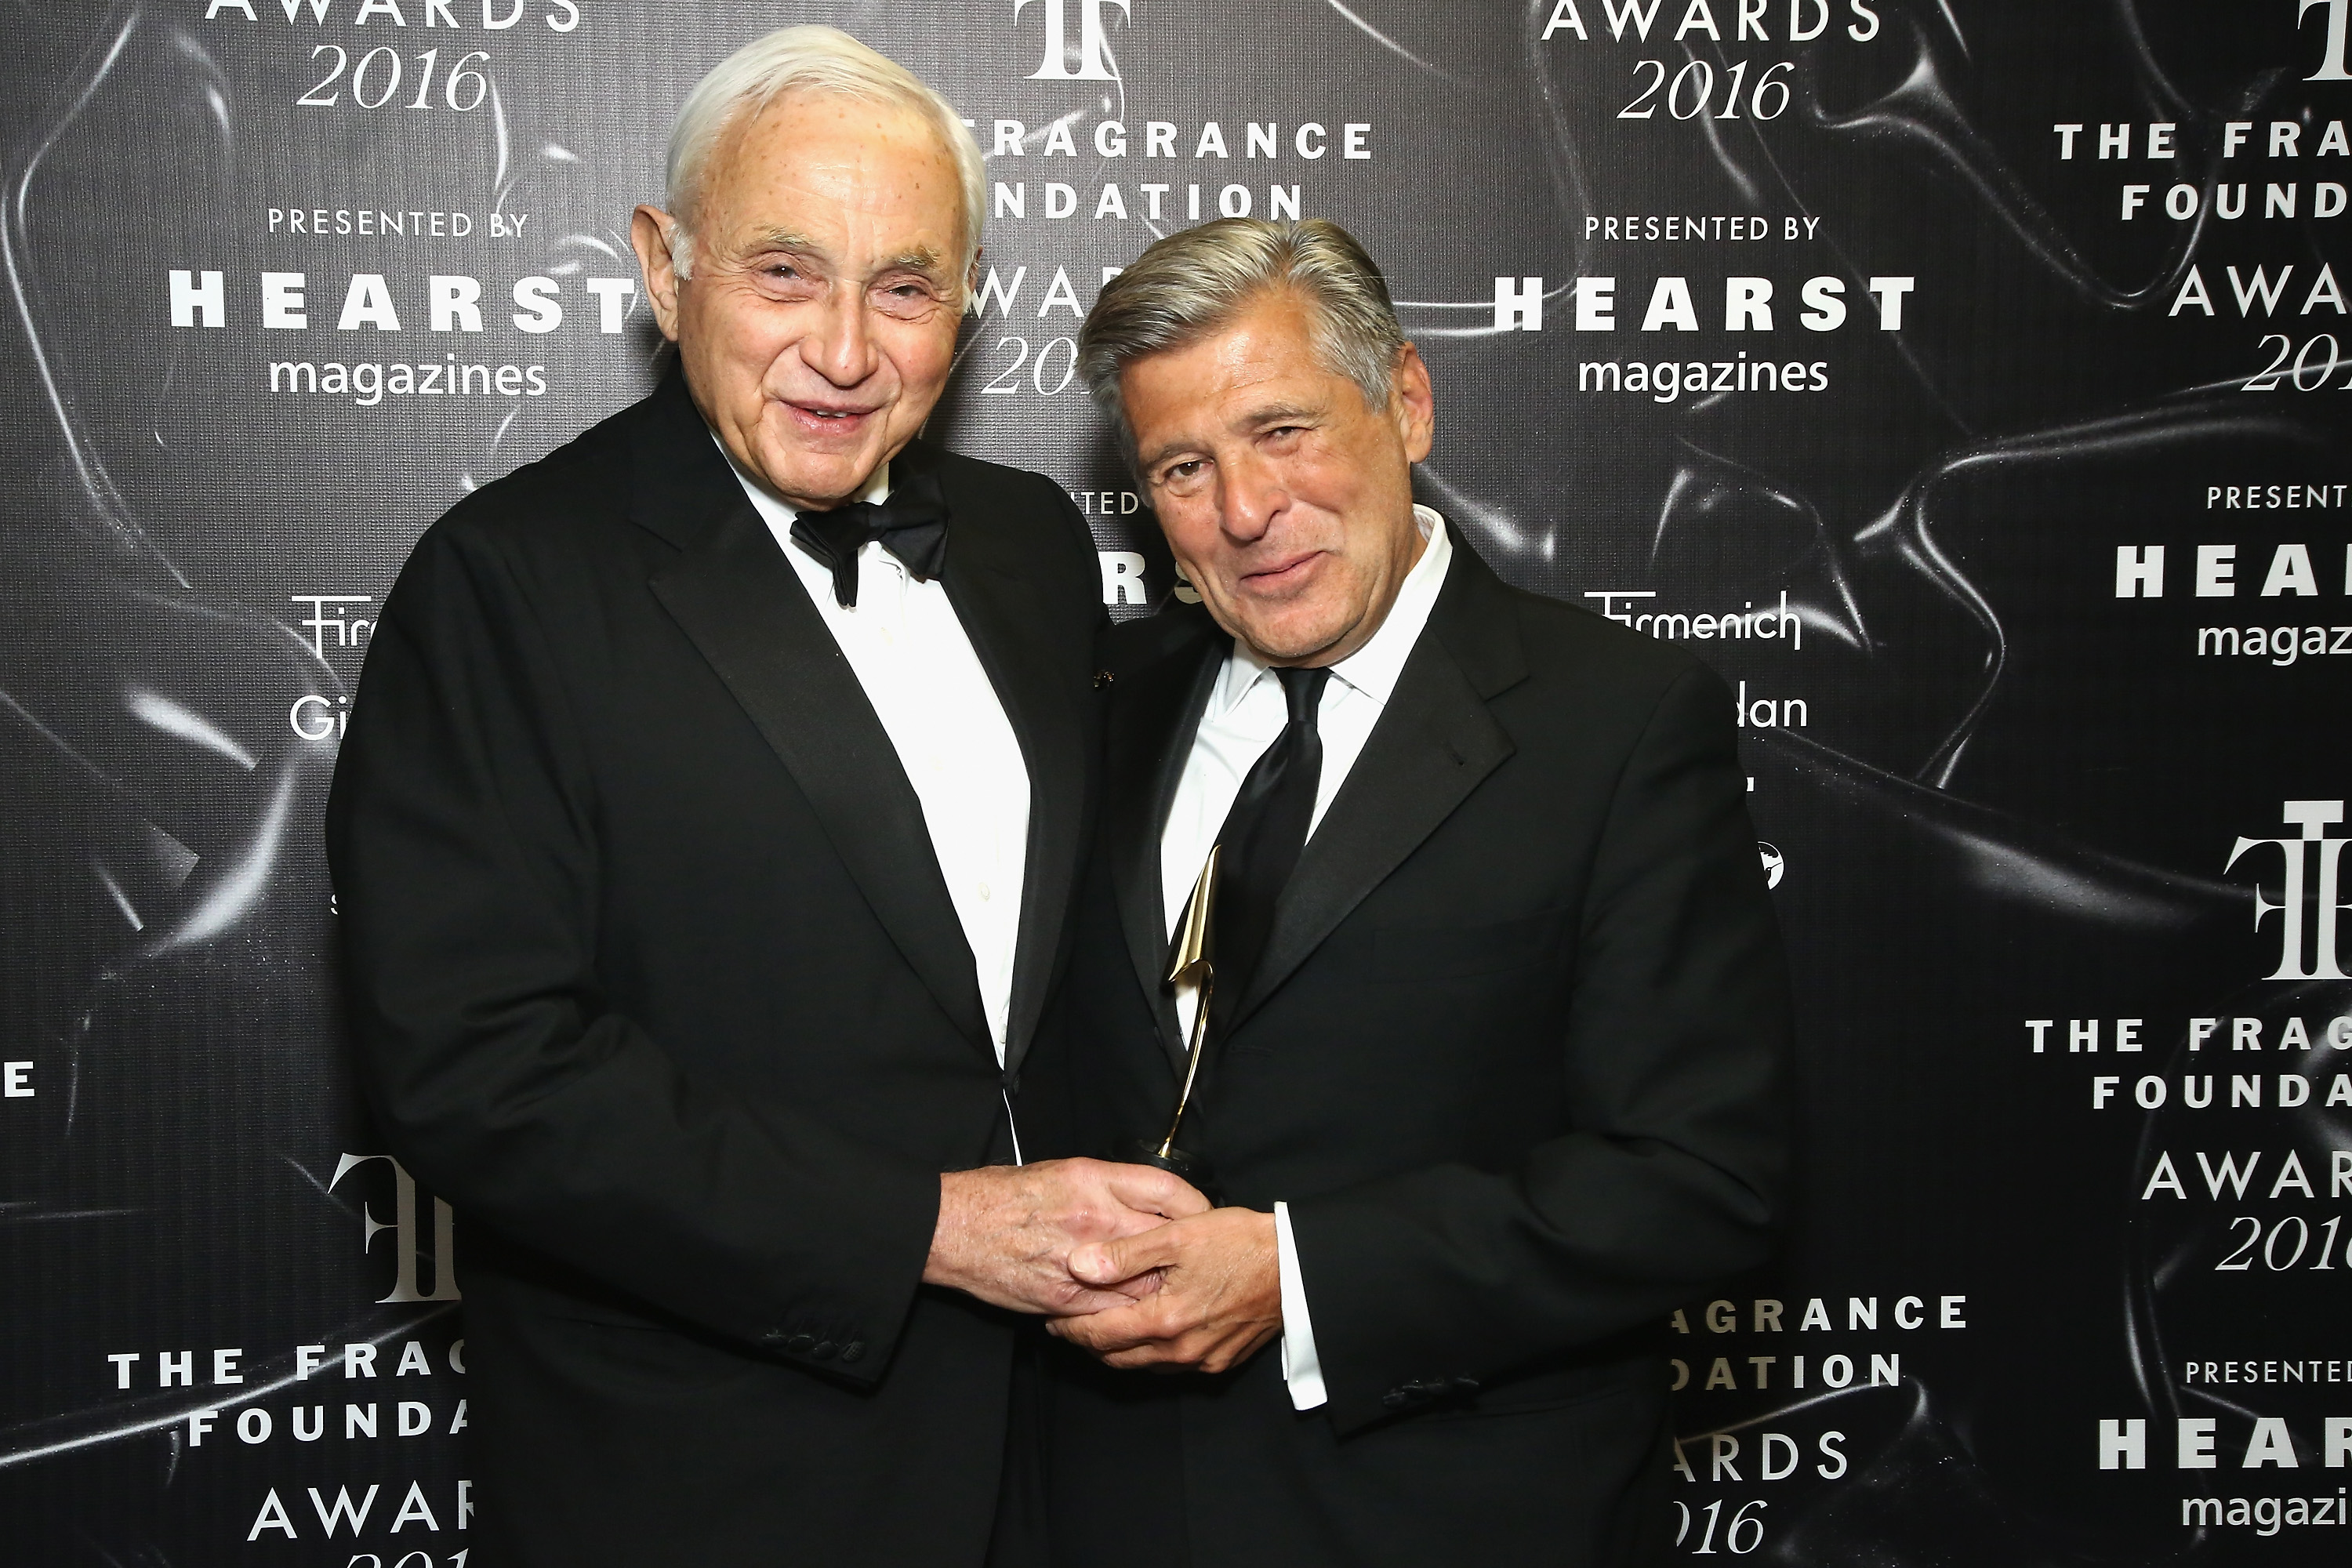 Les Wexner and Ed Razek pose backstage at the 2016 Fragrance Foundation Awards presented by Hearst Magazines on June 7, 2016 in New York City.